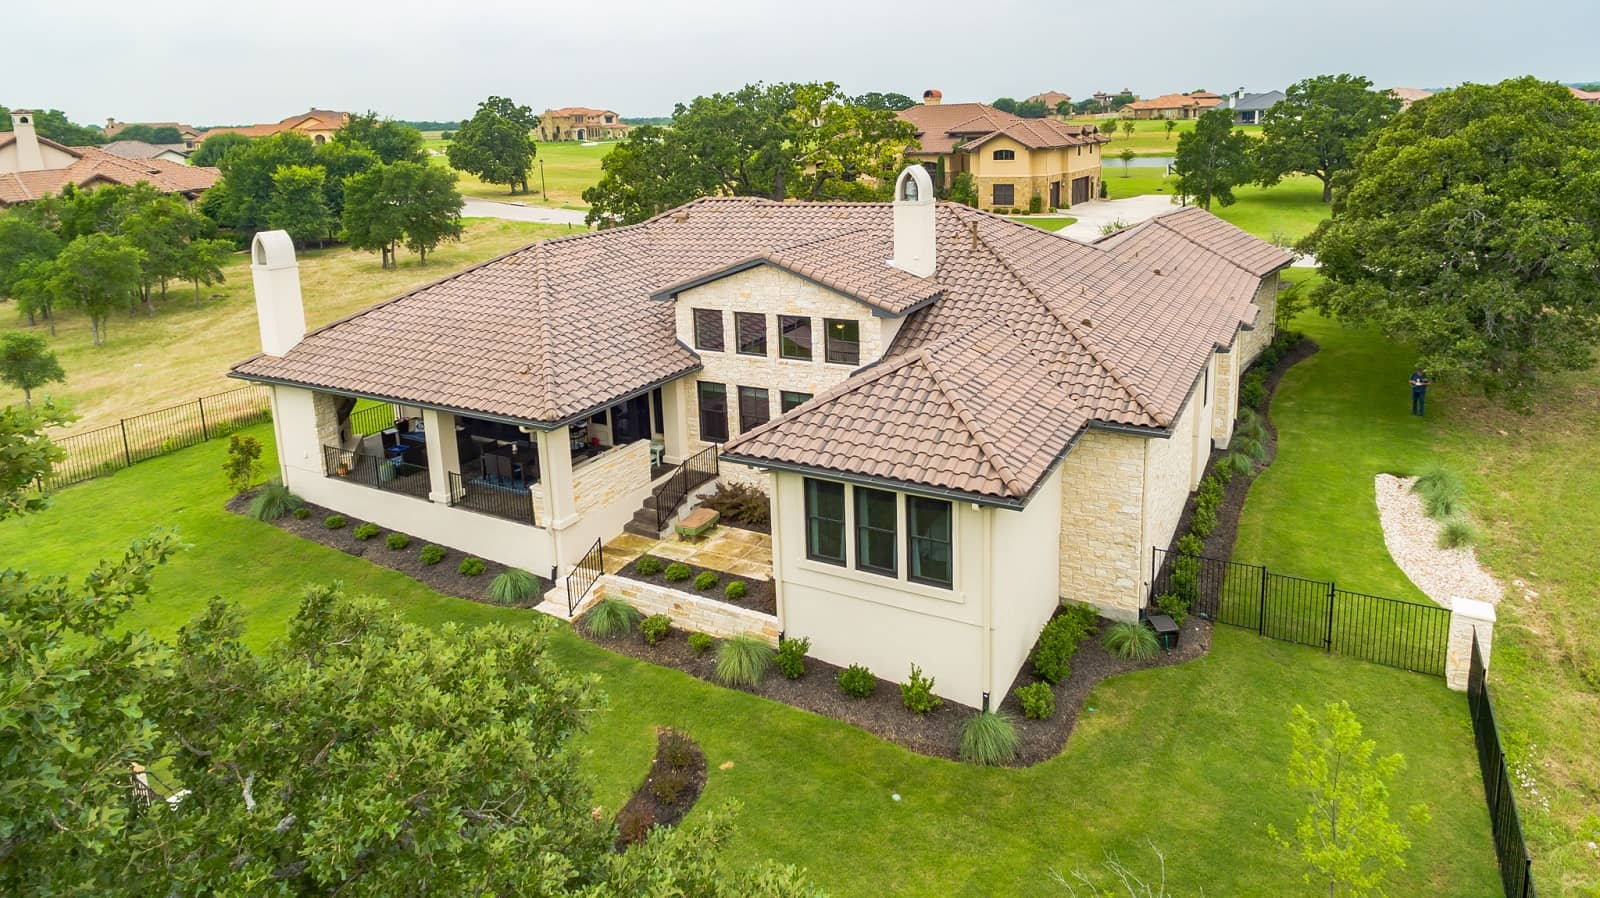 Real Estate Photography in Georgetown - TX - Aerial View